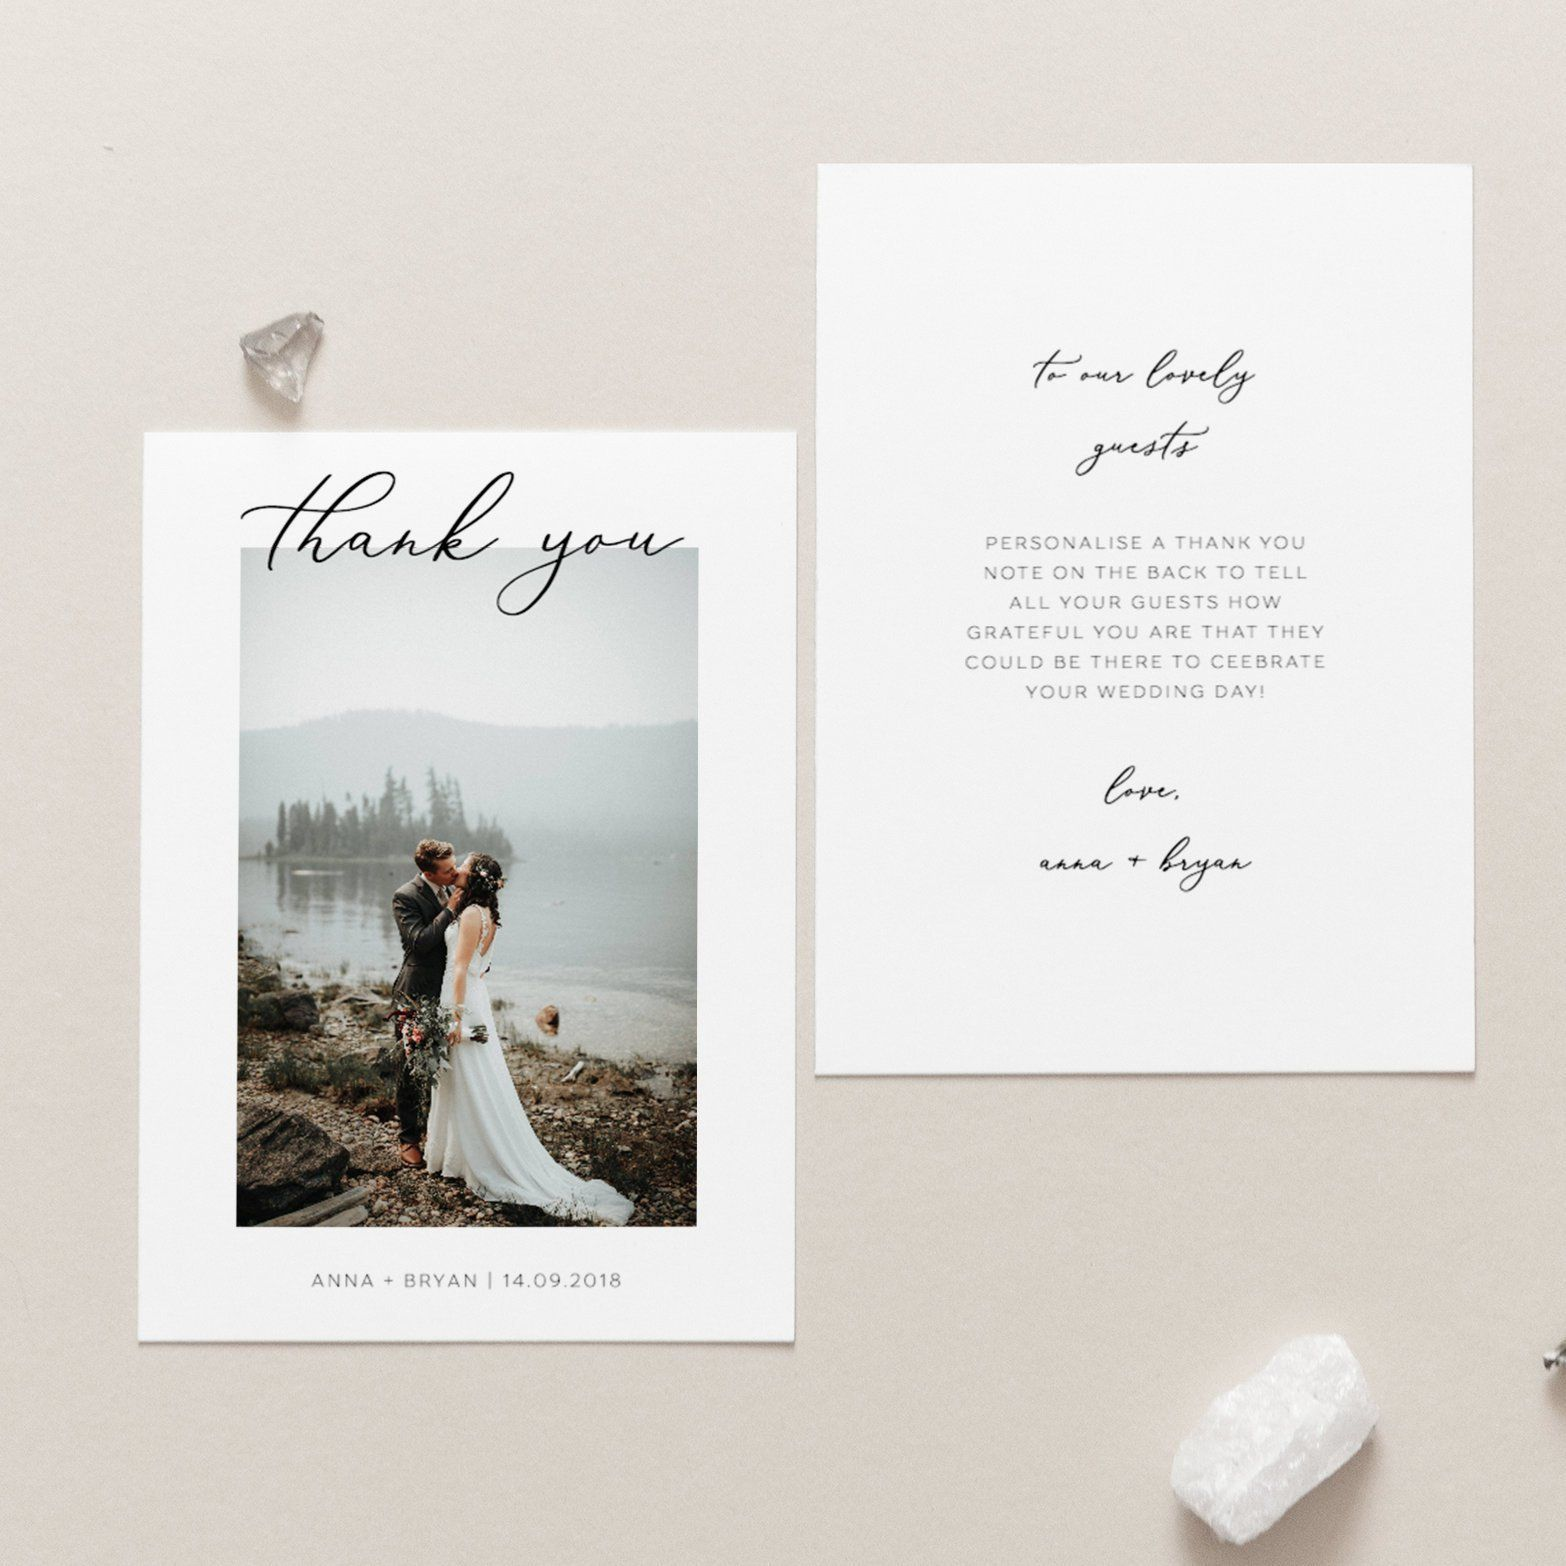 007 Formidable Thank You Note Template Wedding Design  Card Etsy WordingFull